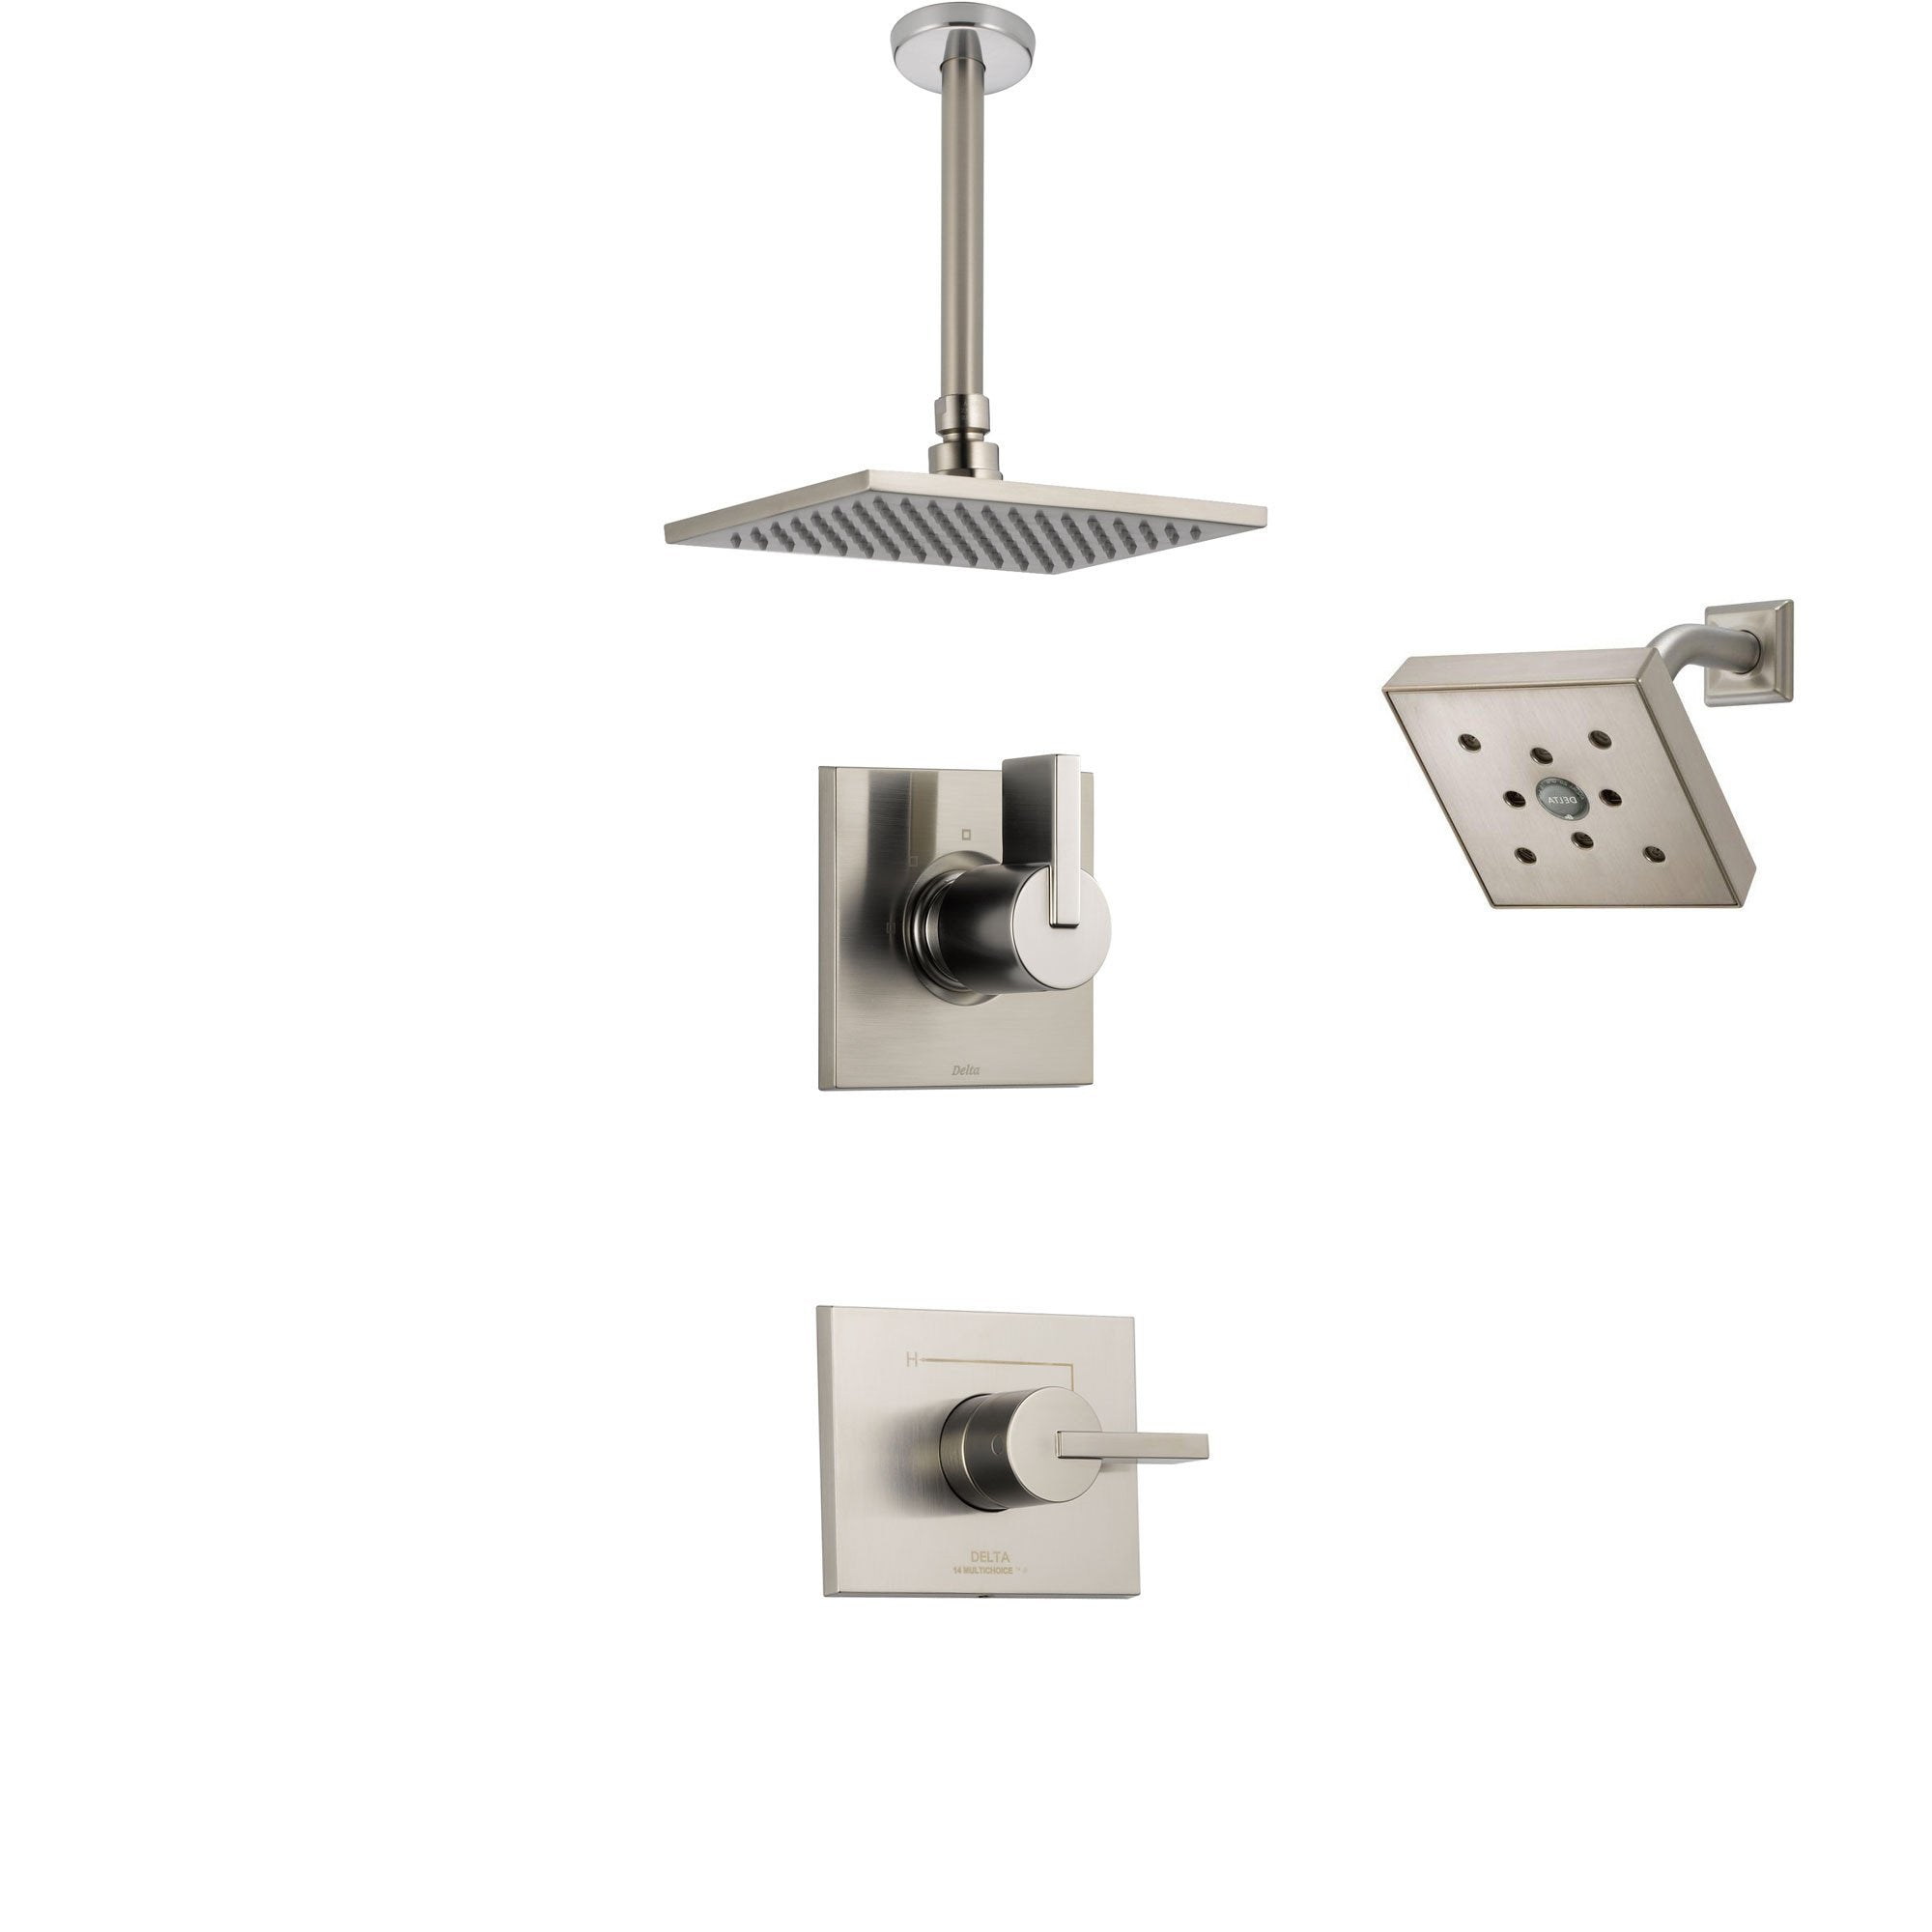 Delta Vero Stainless Steel Shower System with Normal Shower Handle, 3-setting Diverter, Large Square Rain Ceiling Mount Showerhead, and Wall Mount Modern Showerhead SS145384SS